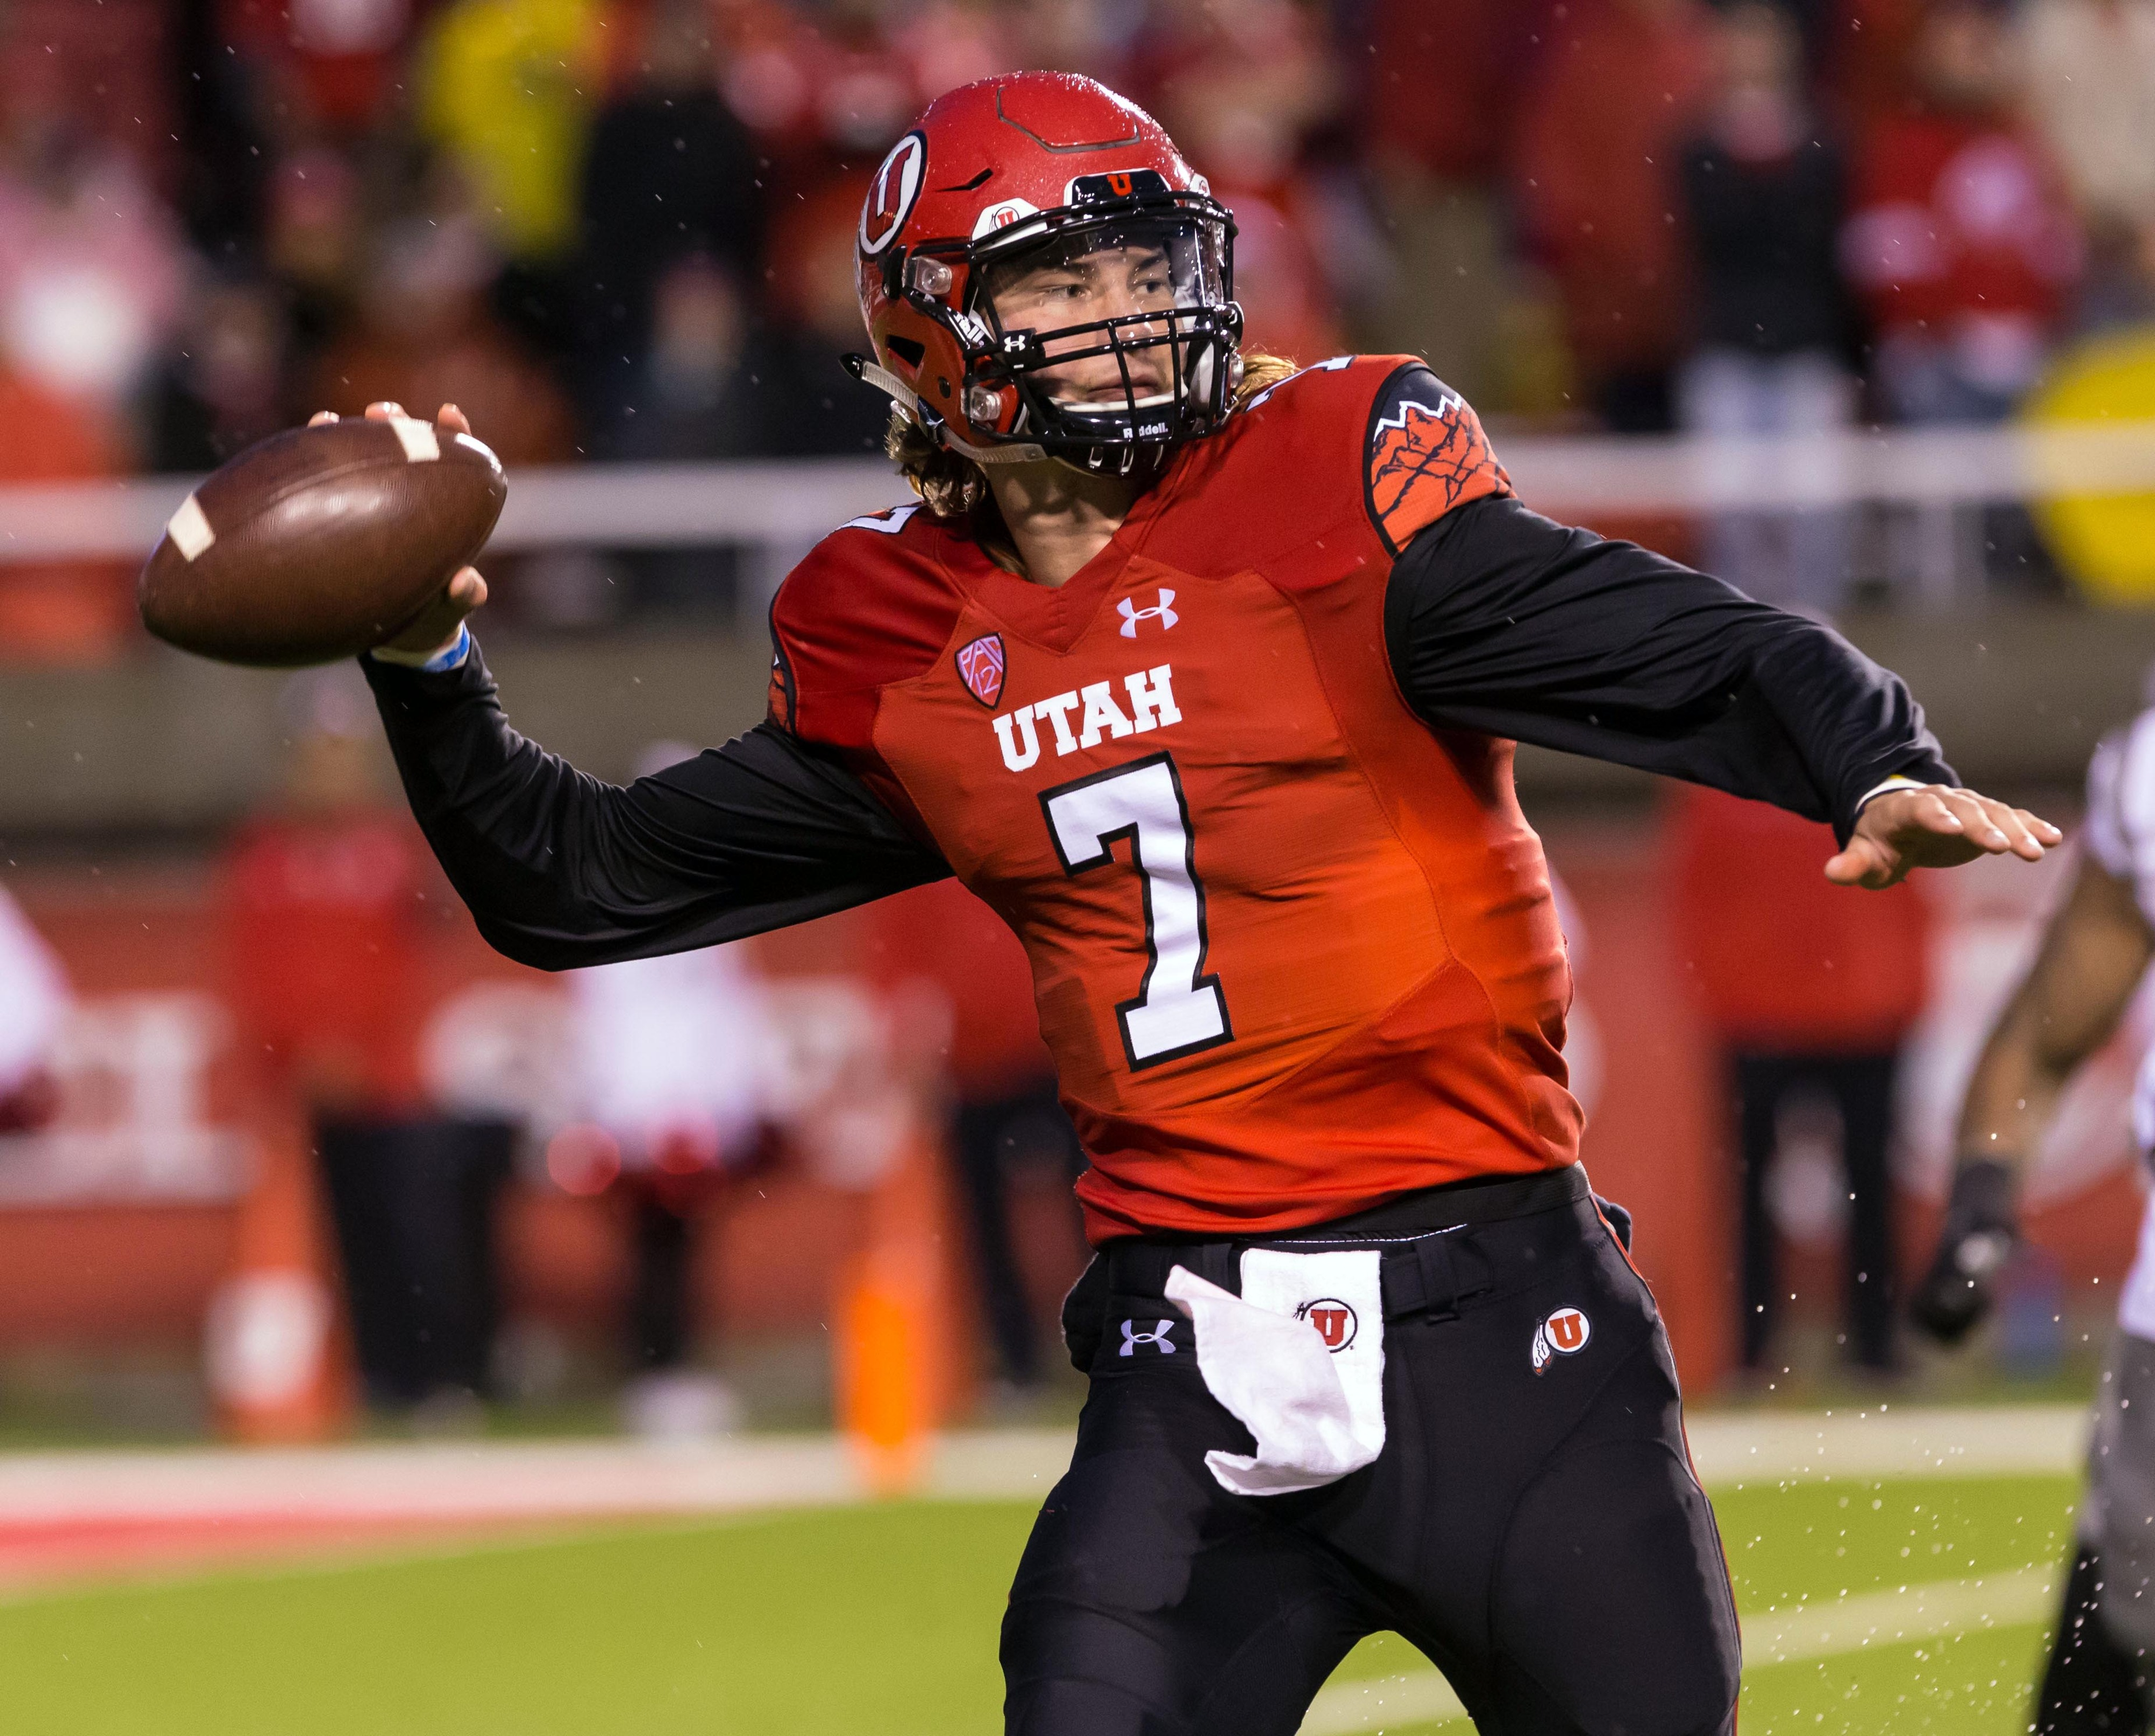 Travis Wilson was chosen by the coaching staff to start at quarterback against USC.